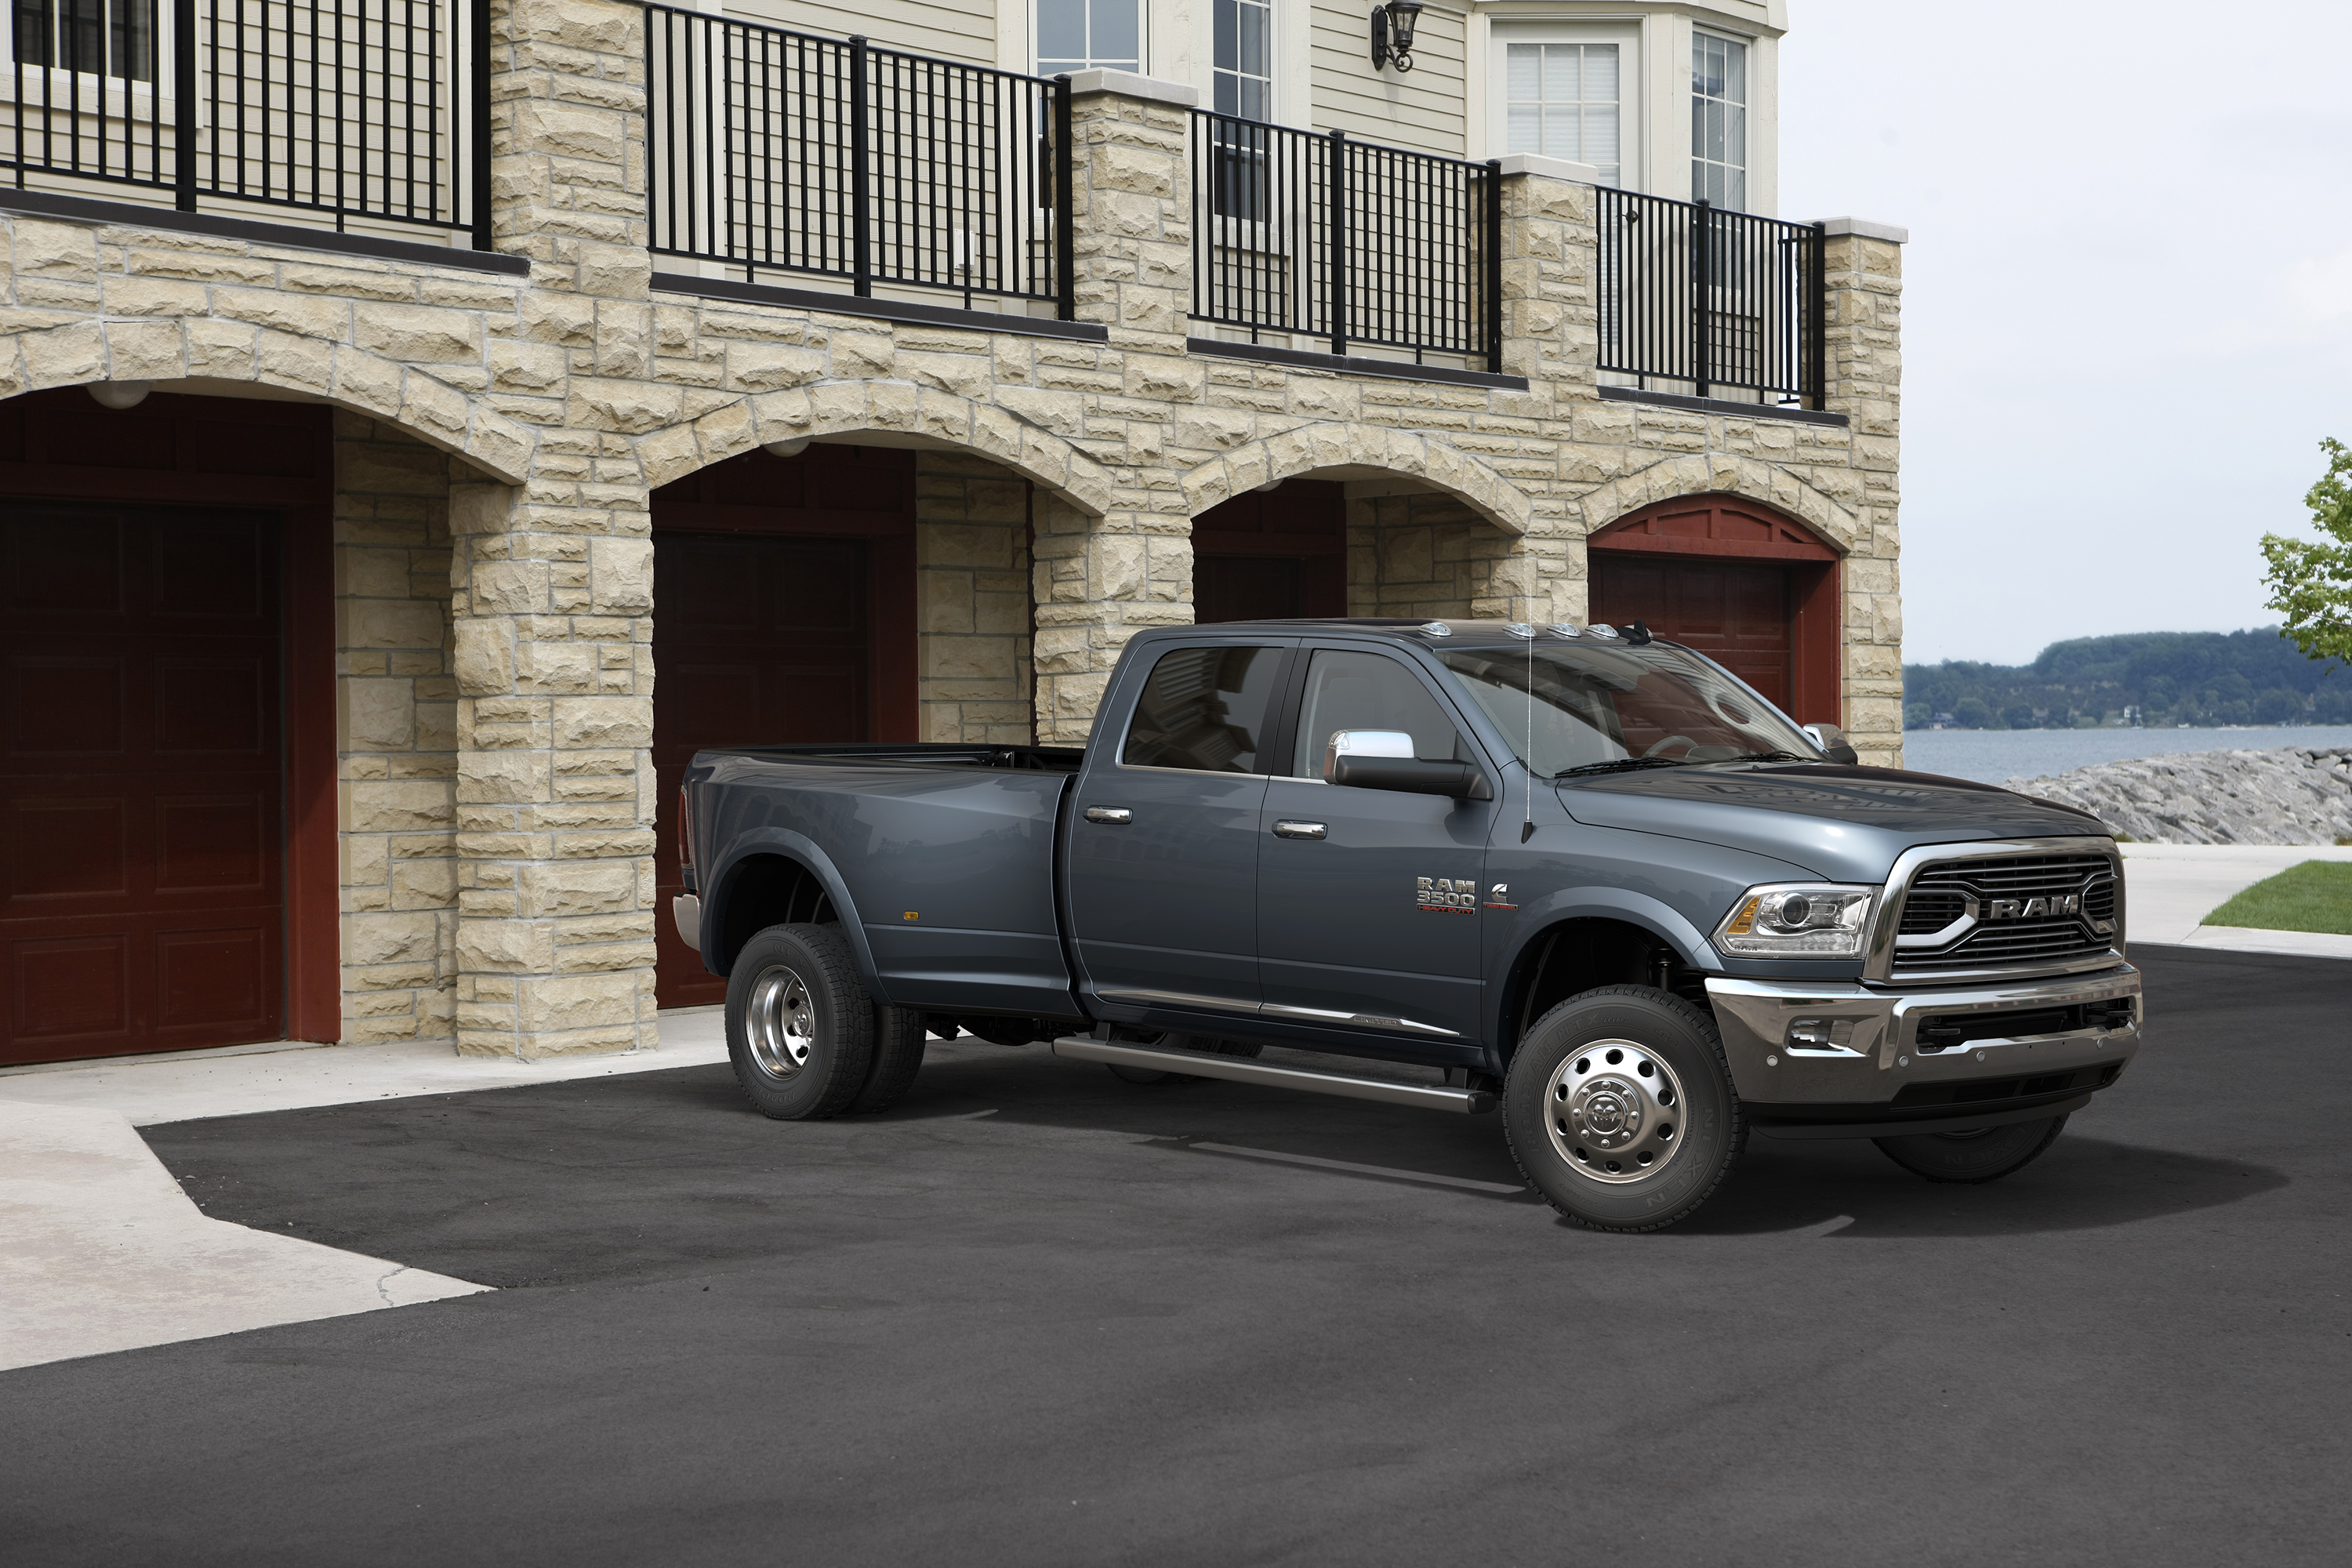 2016 ram 3500 laramie limited heavy duty crew cab dually 4x4. Black Bedroom Furniture Sets. Home Design Ideas